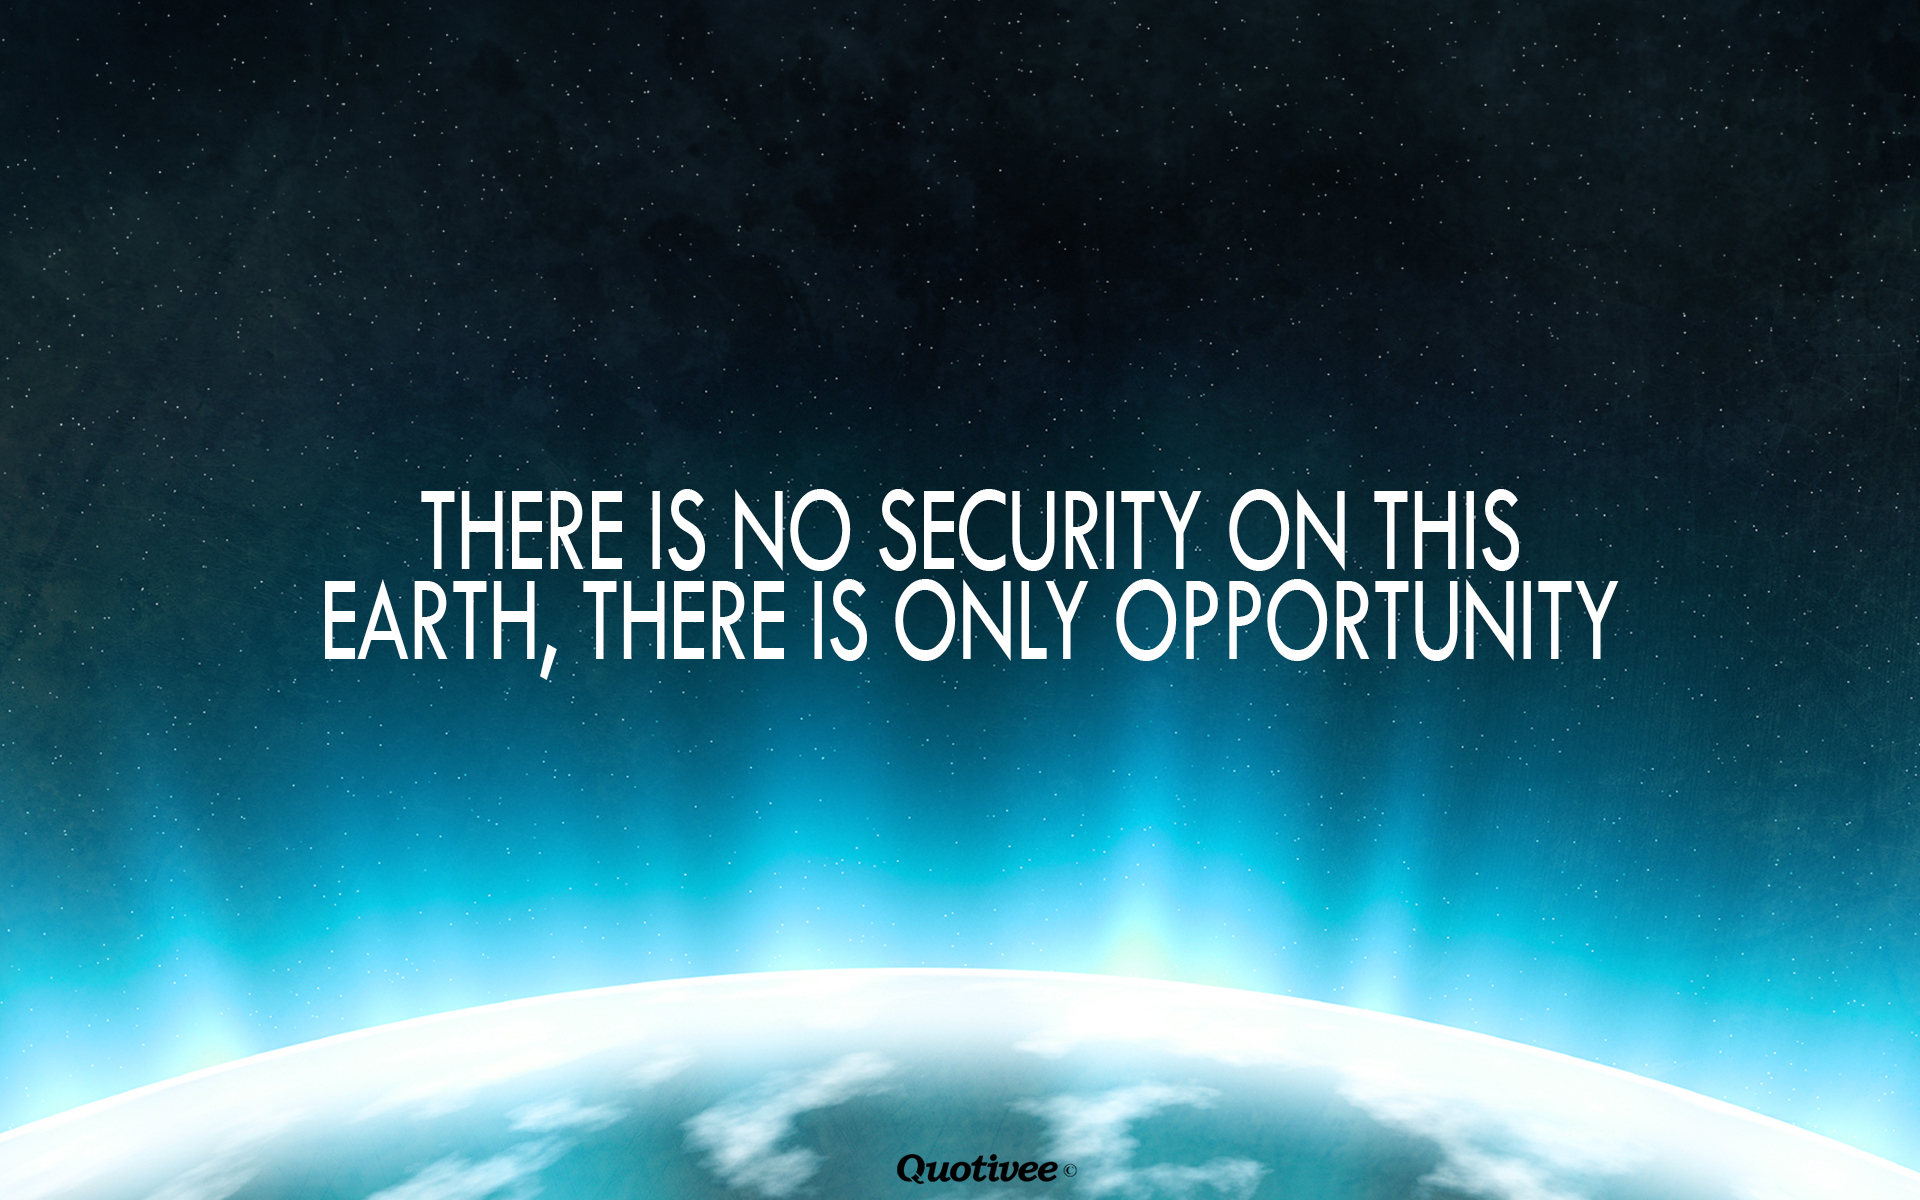 Harvey Specter Quotes Wallpaper There Is No Security Inspirational Quotes Quotivee